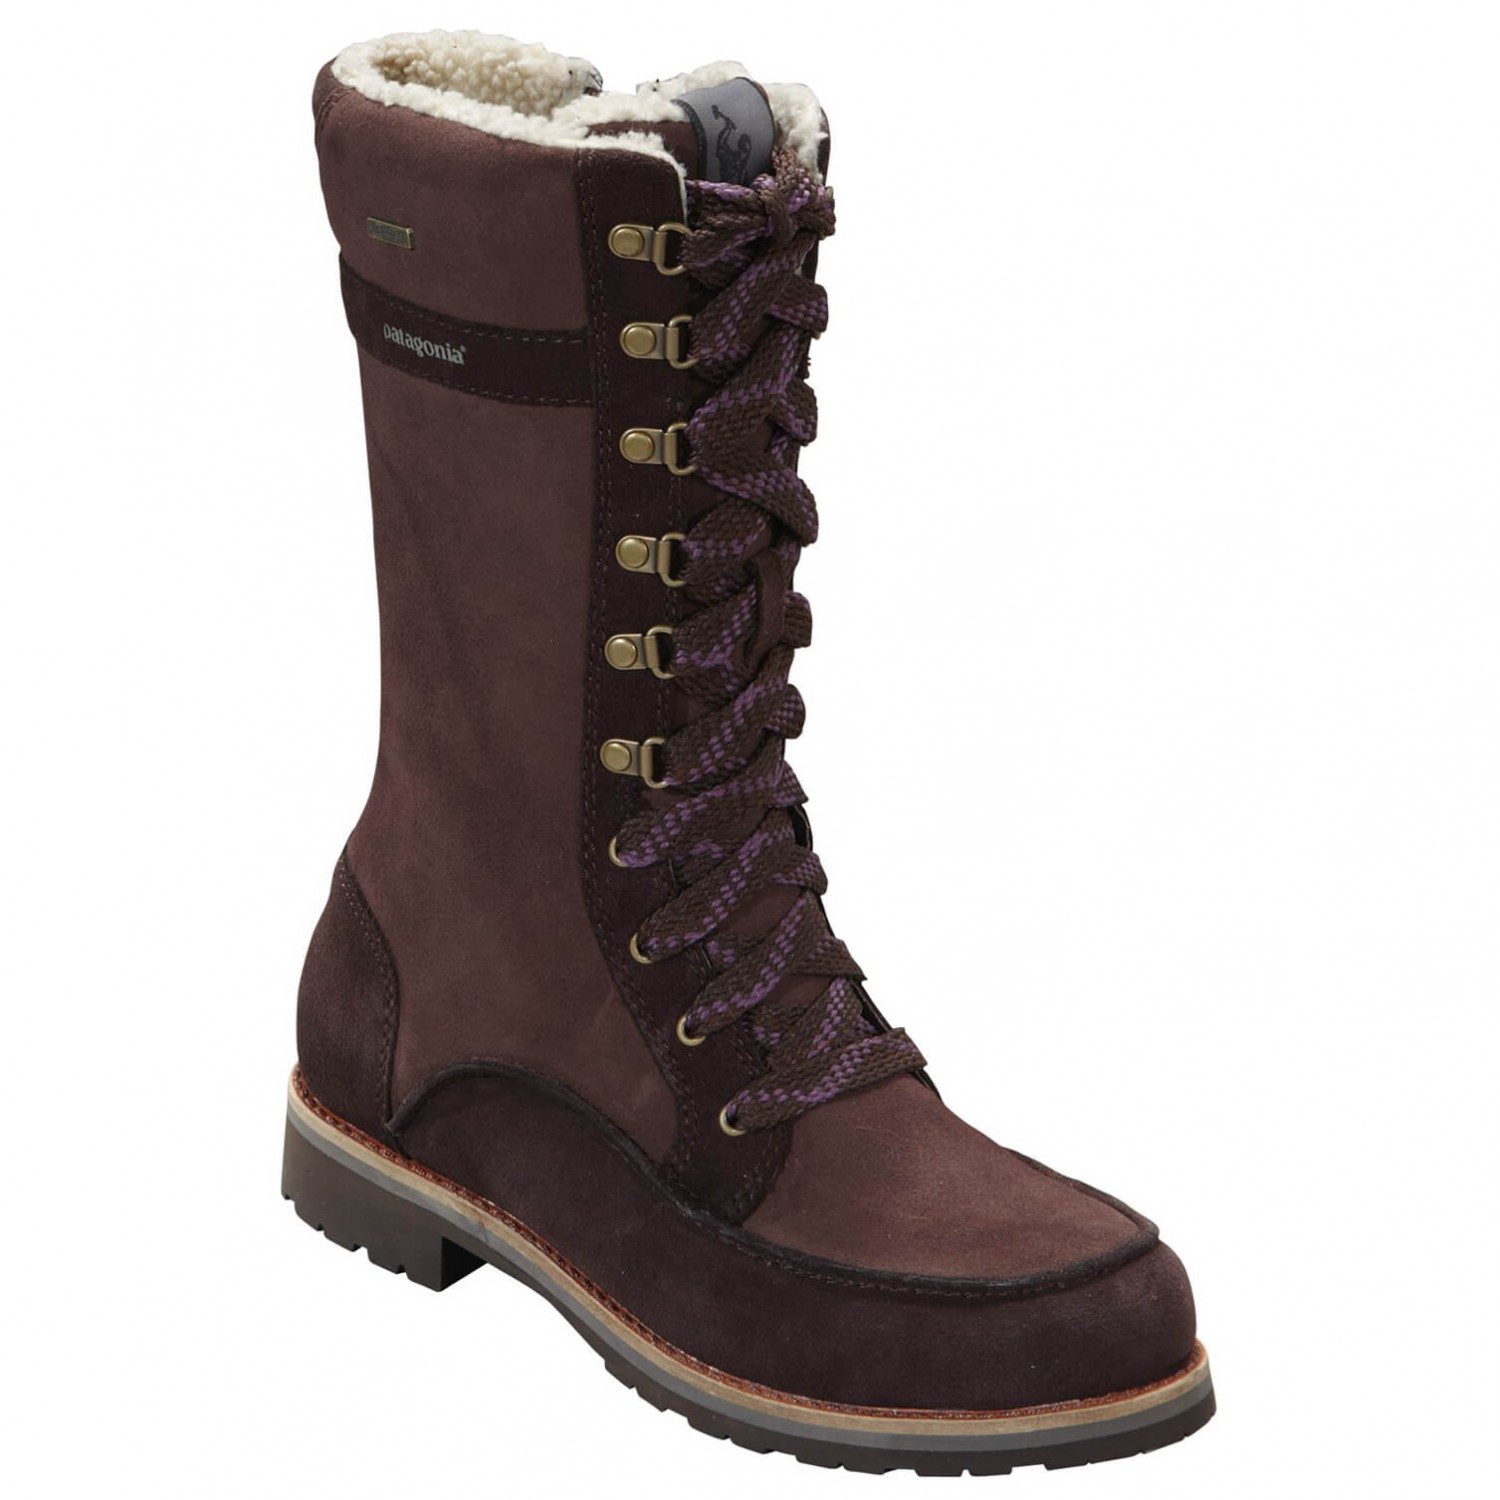 Patagonia Fiona Tall Winter Boots | Santa Barbara Institute for ...